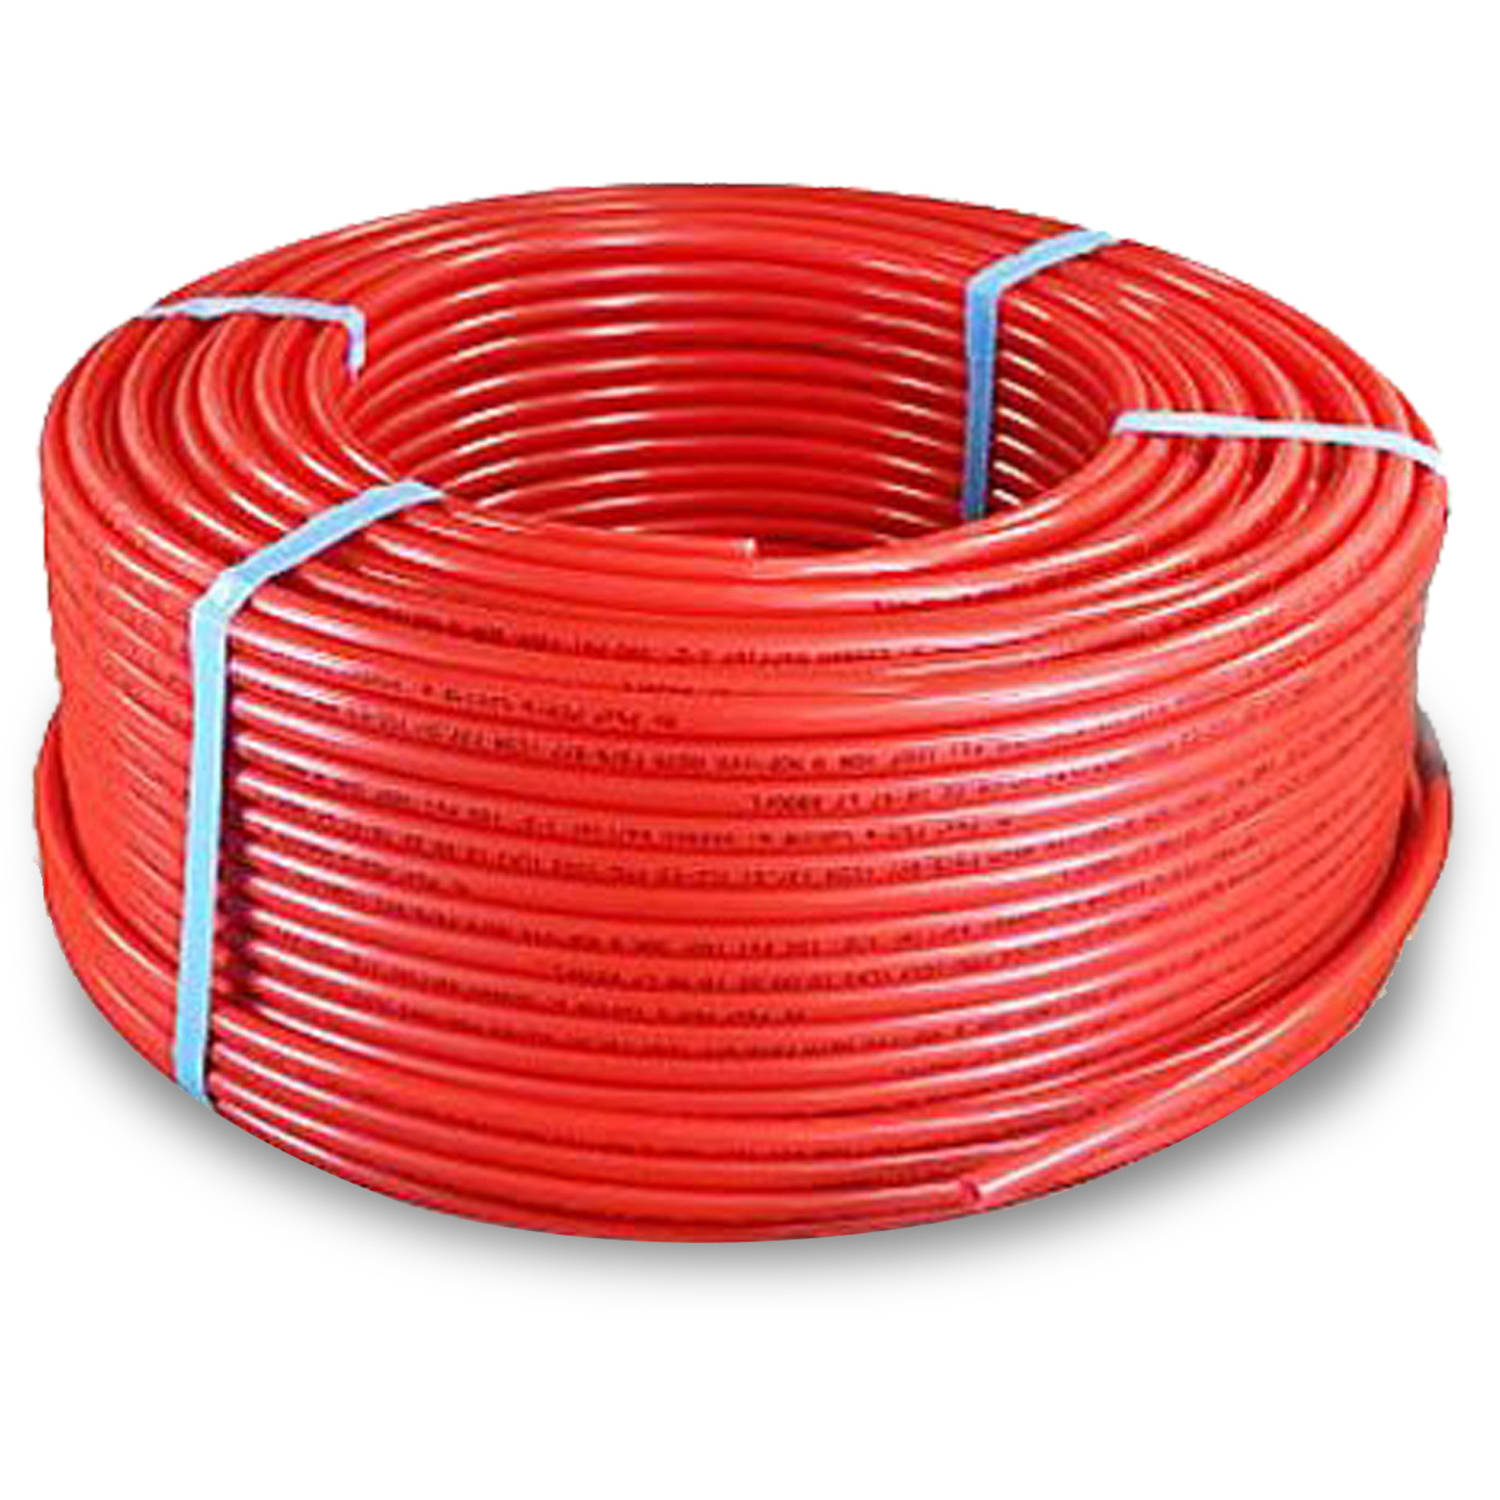 "Pexflow PFR-R341000 Pex Tubing, Oxygen Barrier Red, 3/4"" x 1000' (305m)"